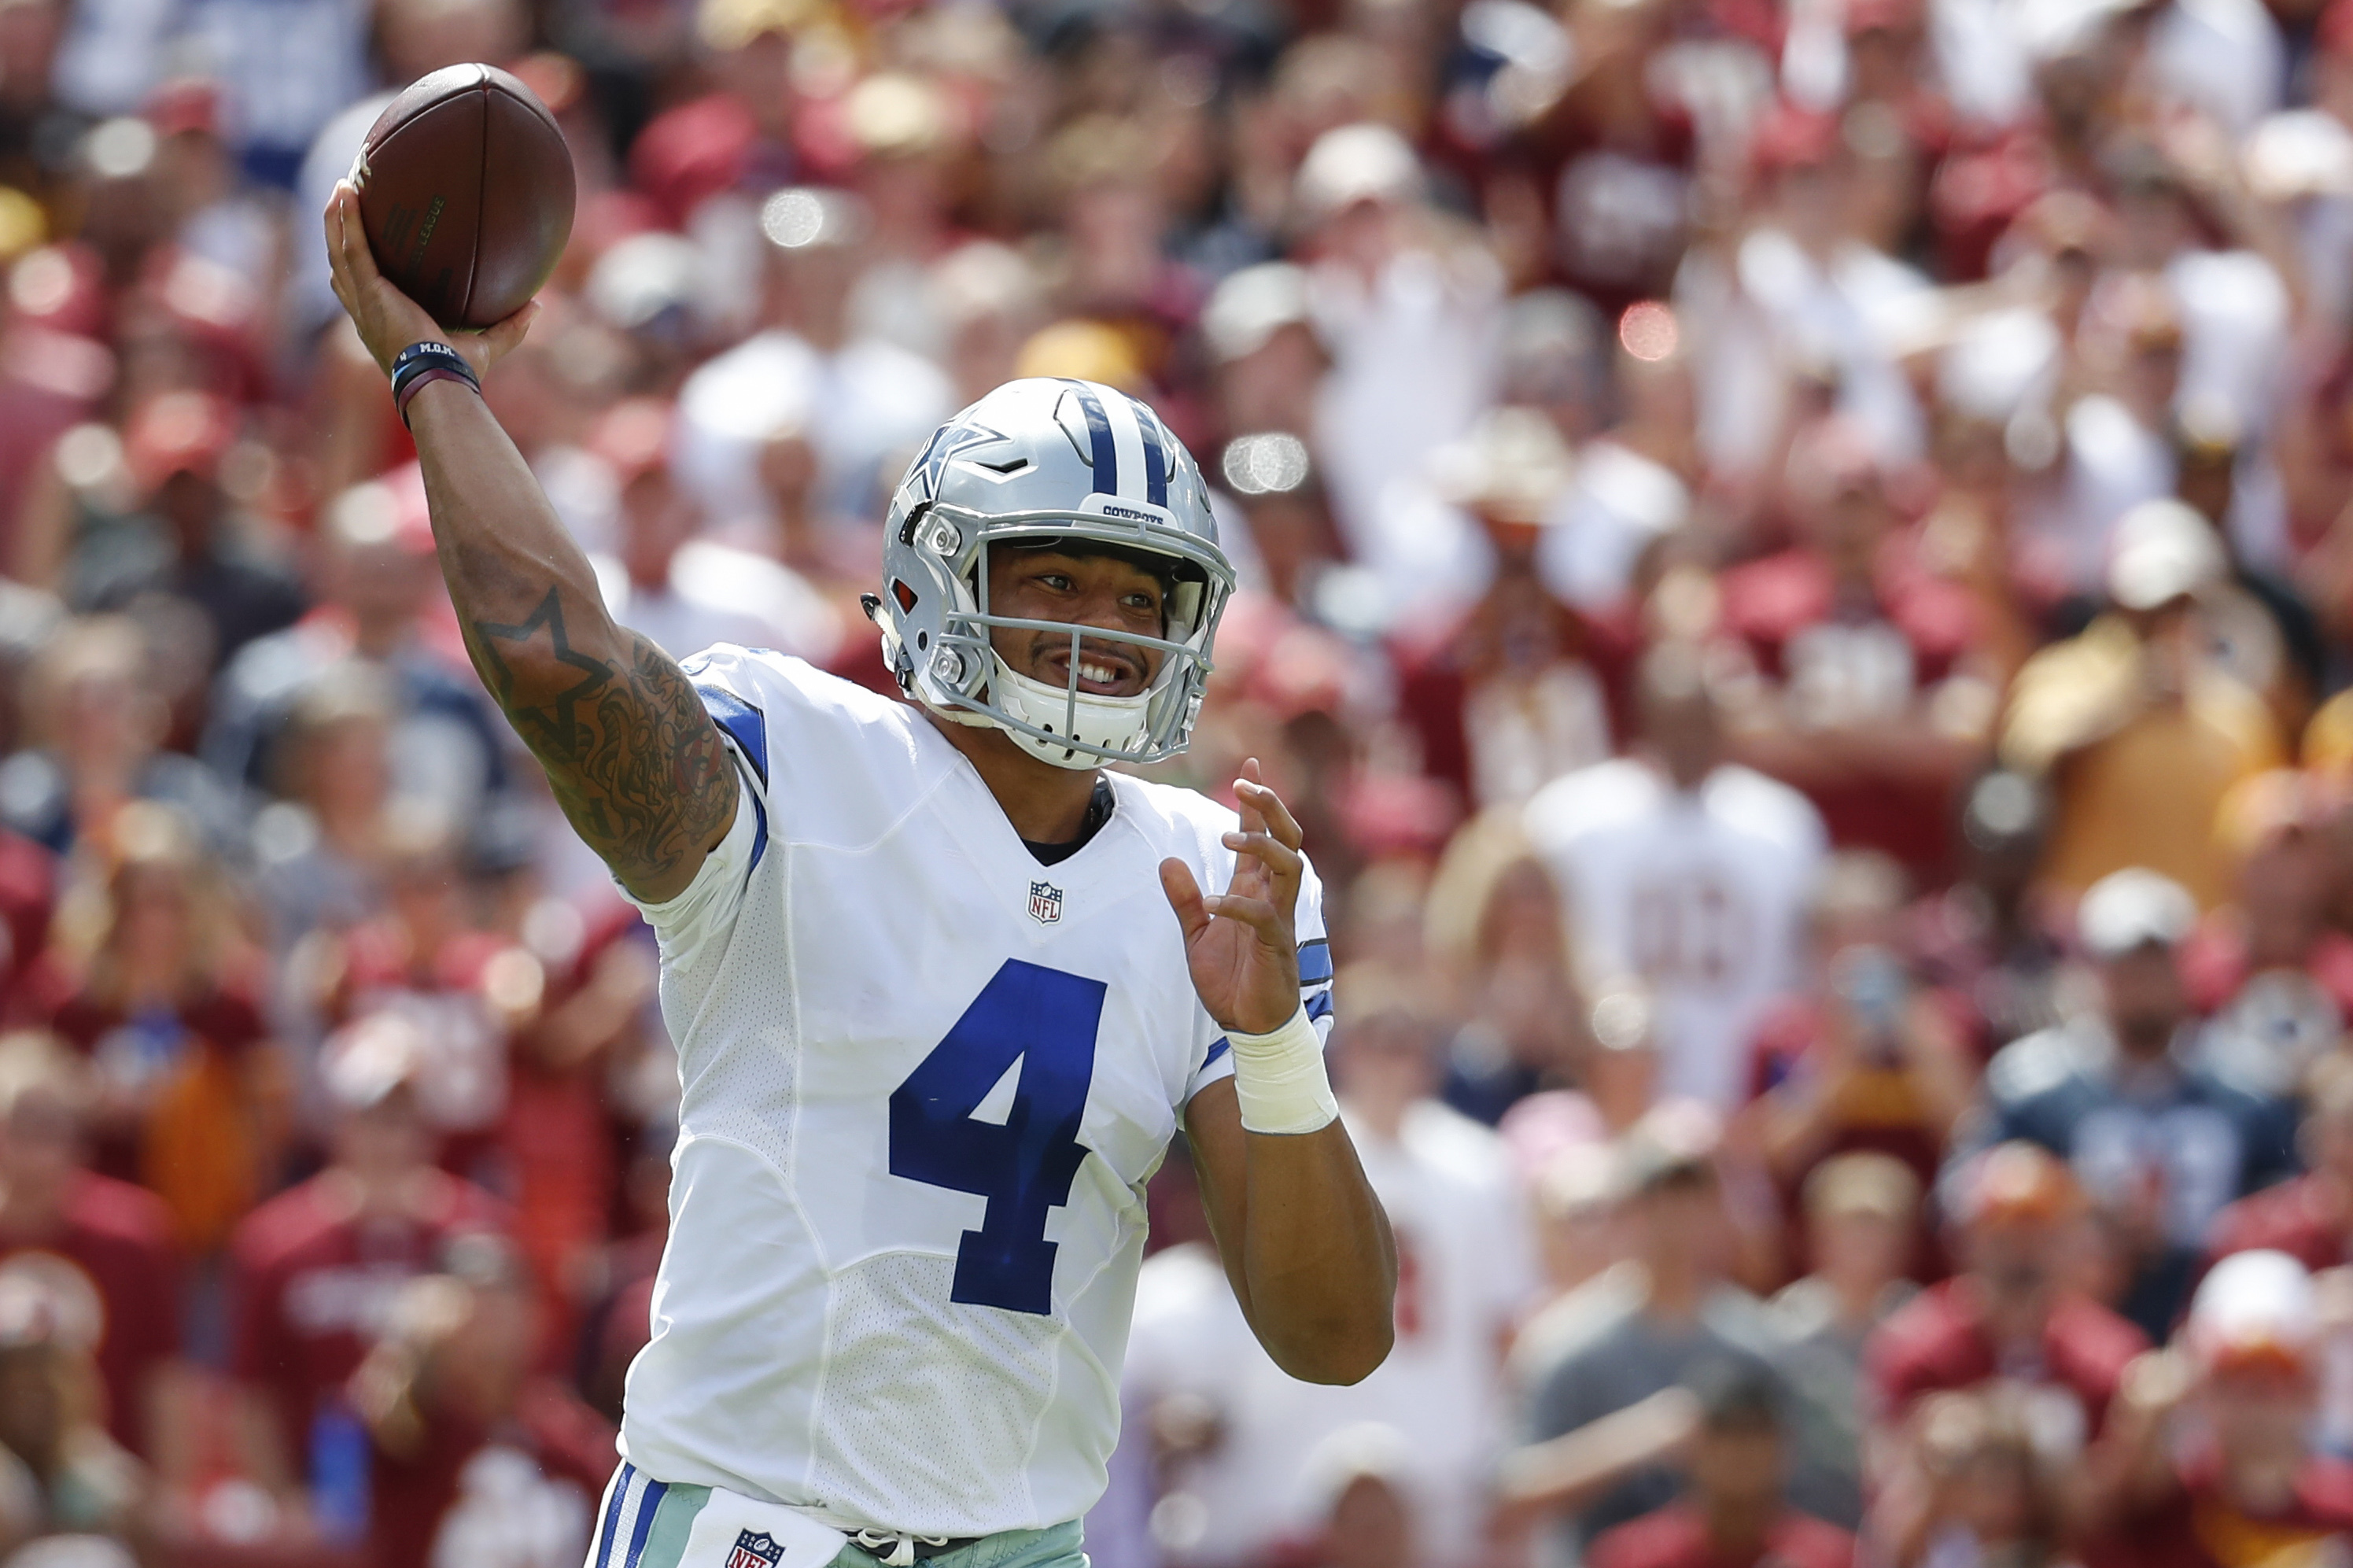 Dallas Cowboys quarterback Dak Prescott (4) passes the ball during the first half of an NFL football game against the Washington Redskins in Landover, Md., Sunday, Sept. 18, 2016. (AP Photo/Alex Brandon)